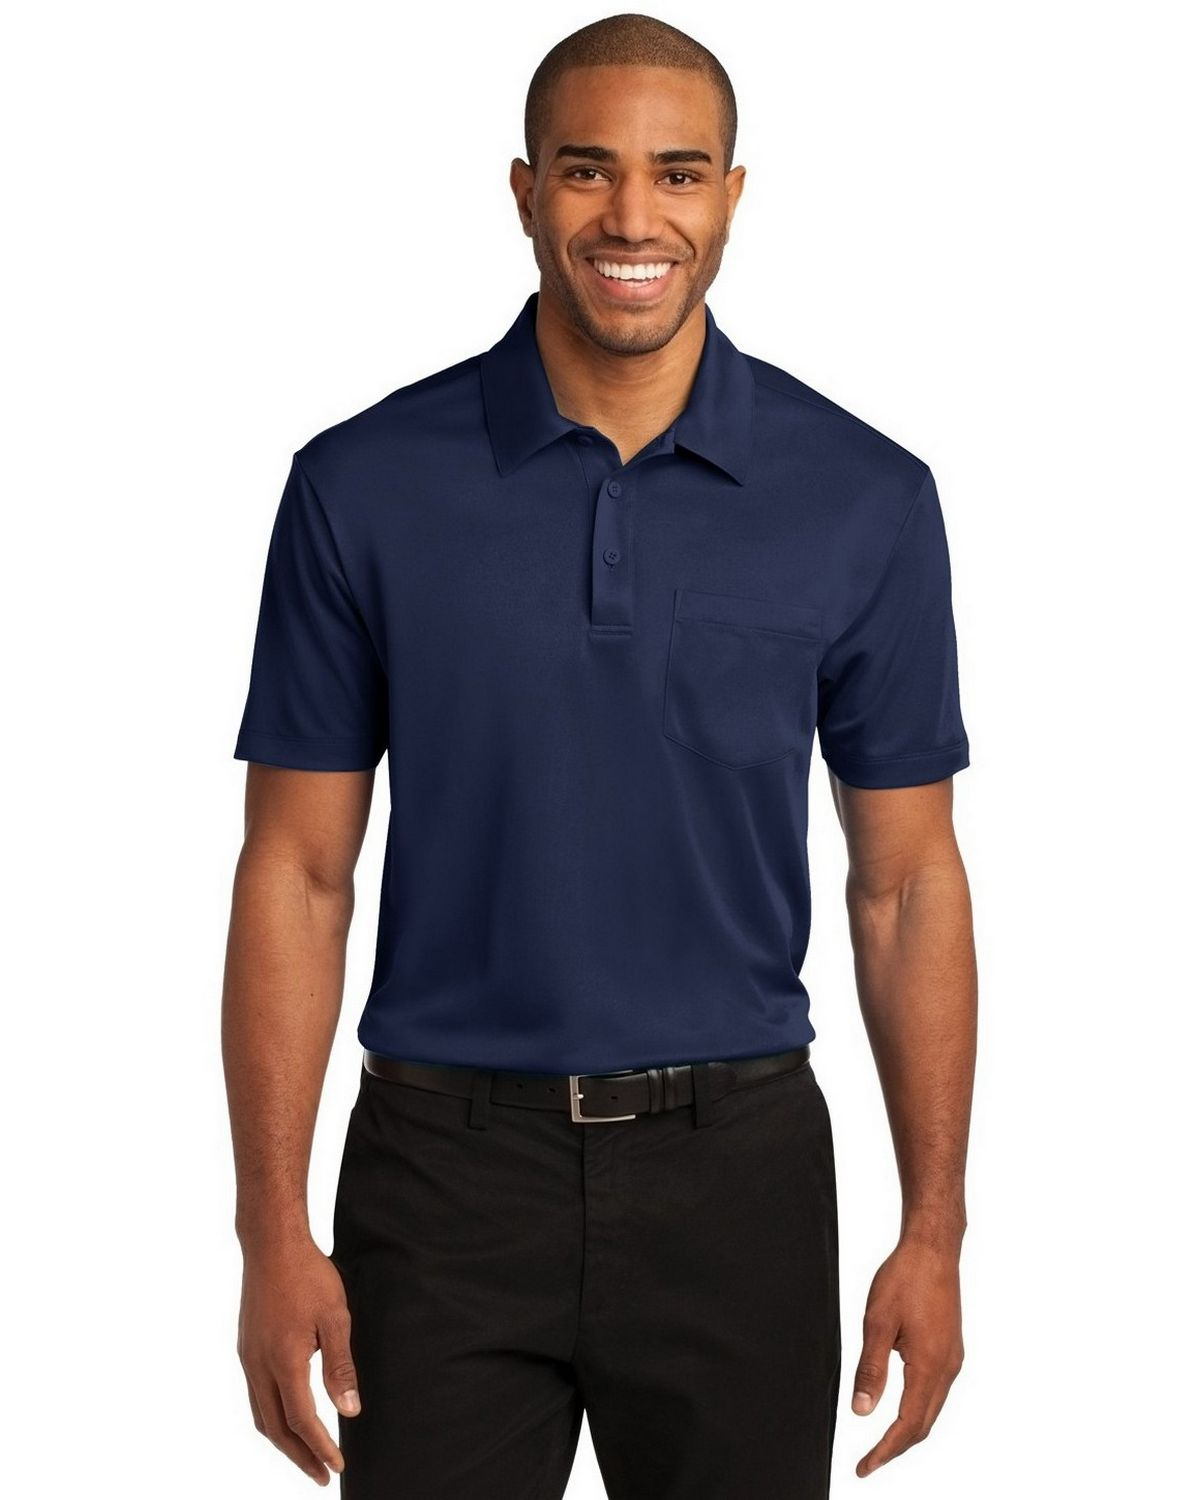 Port Authority K540P Men's Silk Touch Performance Pocket Polo - Navy - XS #silk